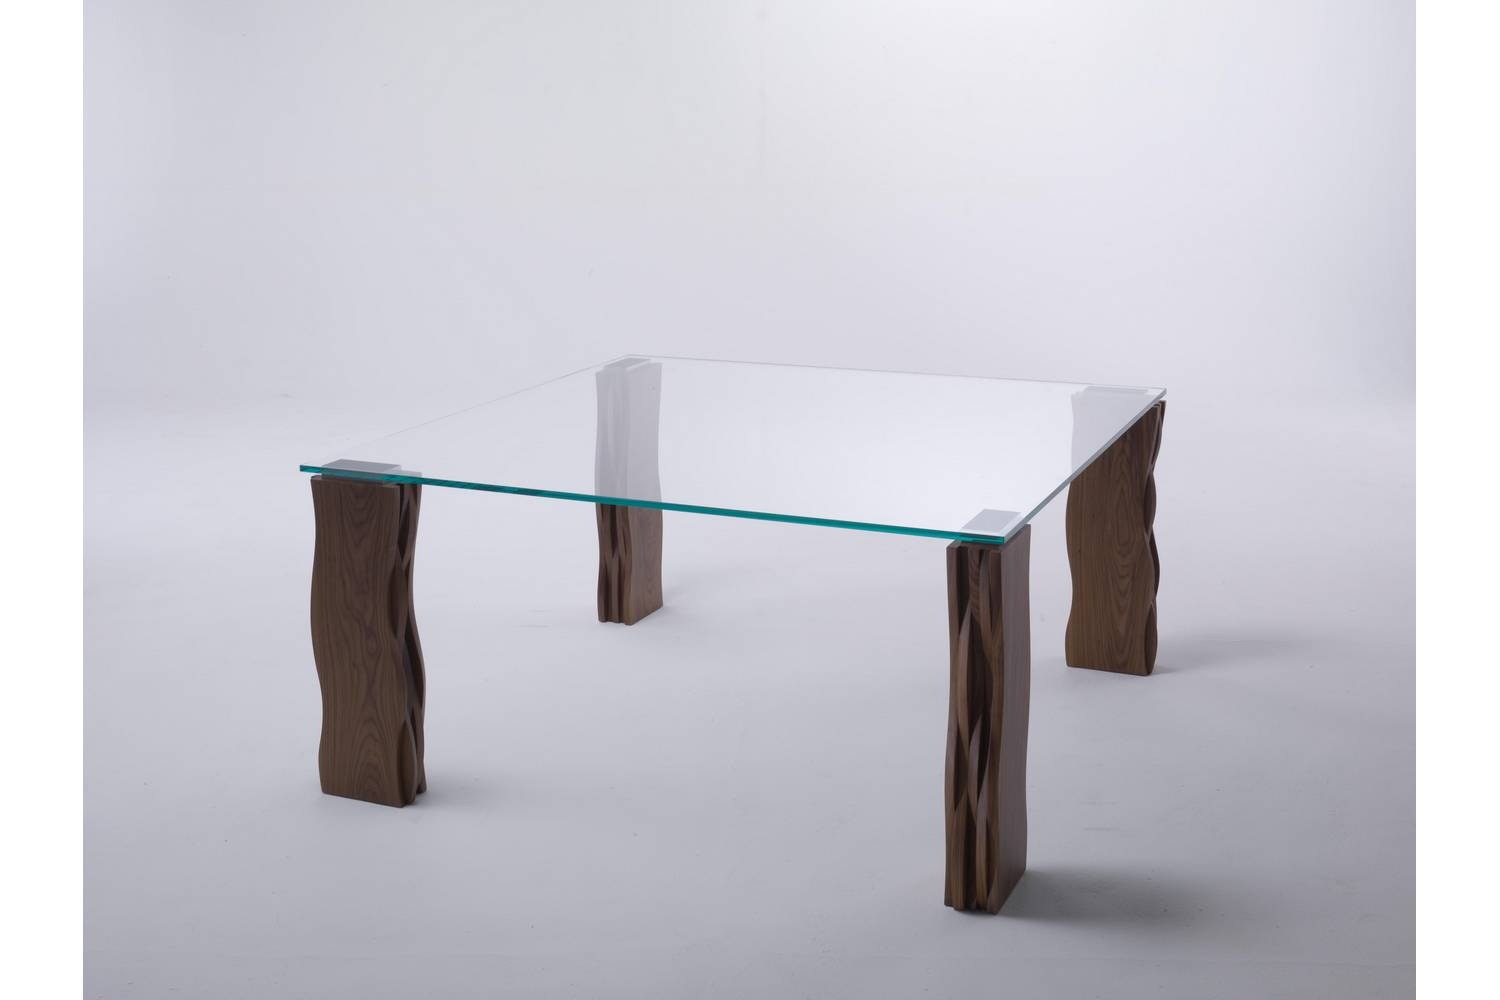 Samburu Table by M. Marconato - T. Zappa for Porada